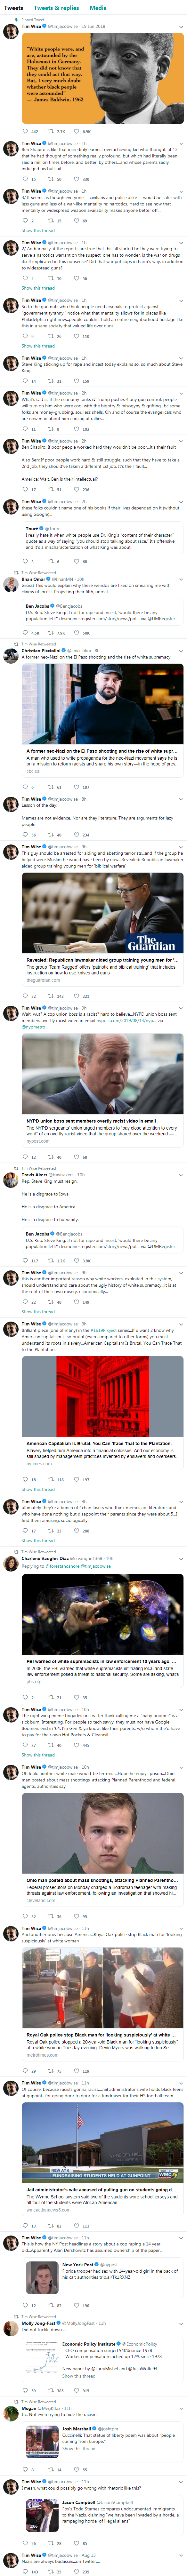 Tim_Wise_Twitter_8-14-2018_1145PM.png